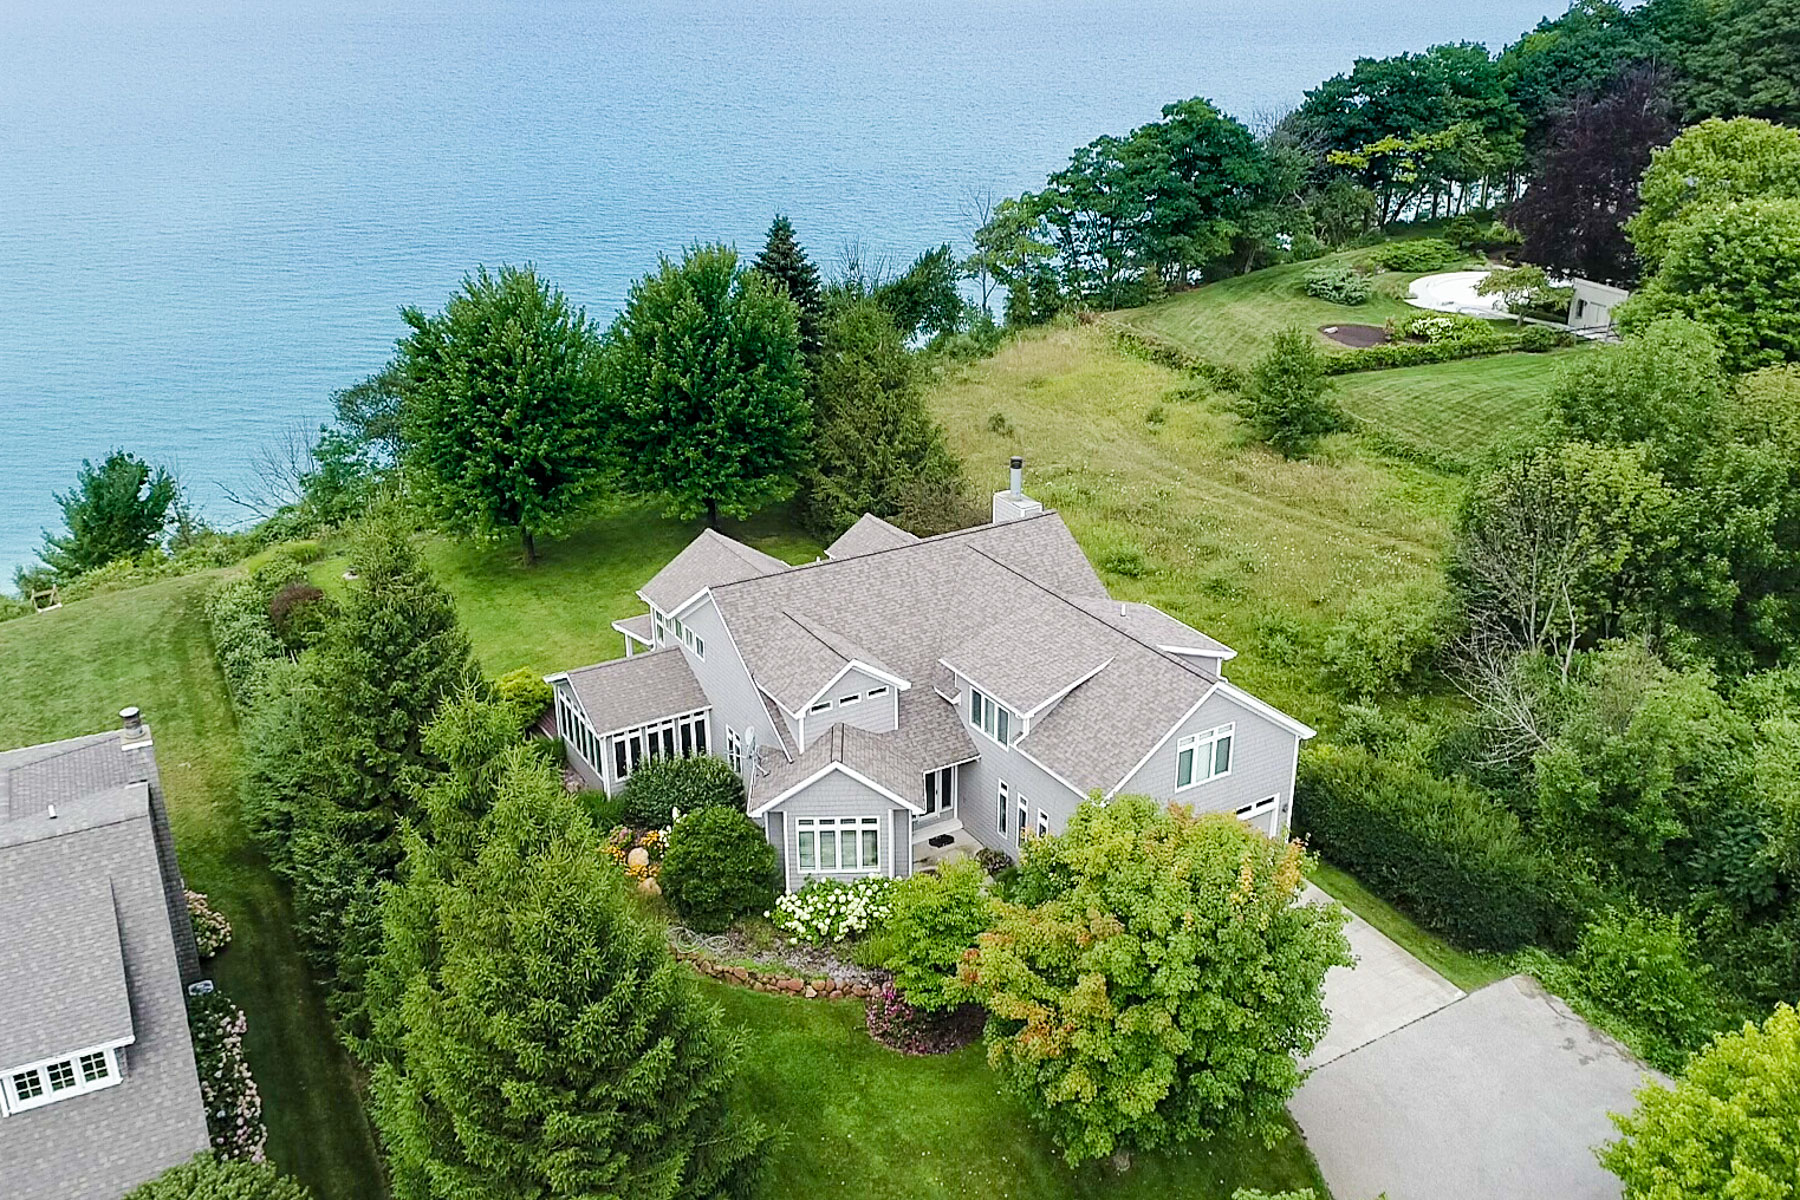 Single Family Homes for Sale at Lake Michigan Waterfront Oasis 5065 Anderfind Dr Ludington, Michigan 49431 United States